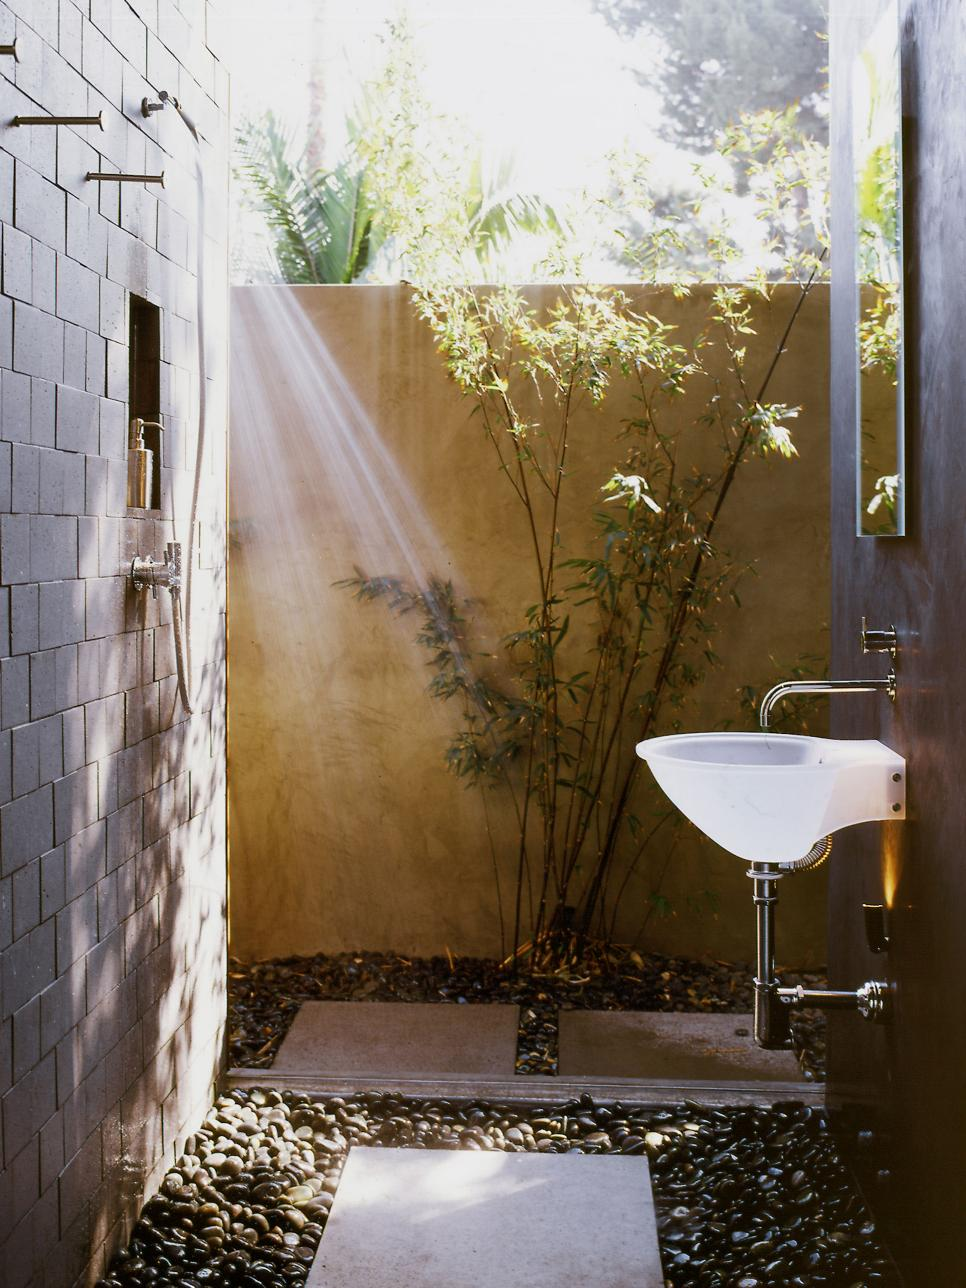 Tiny shower corner with a polished, gorgeous style